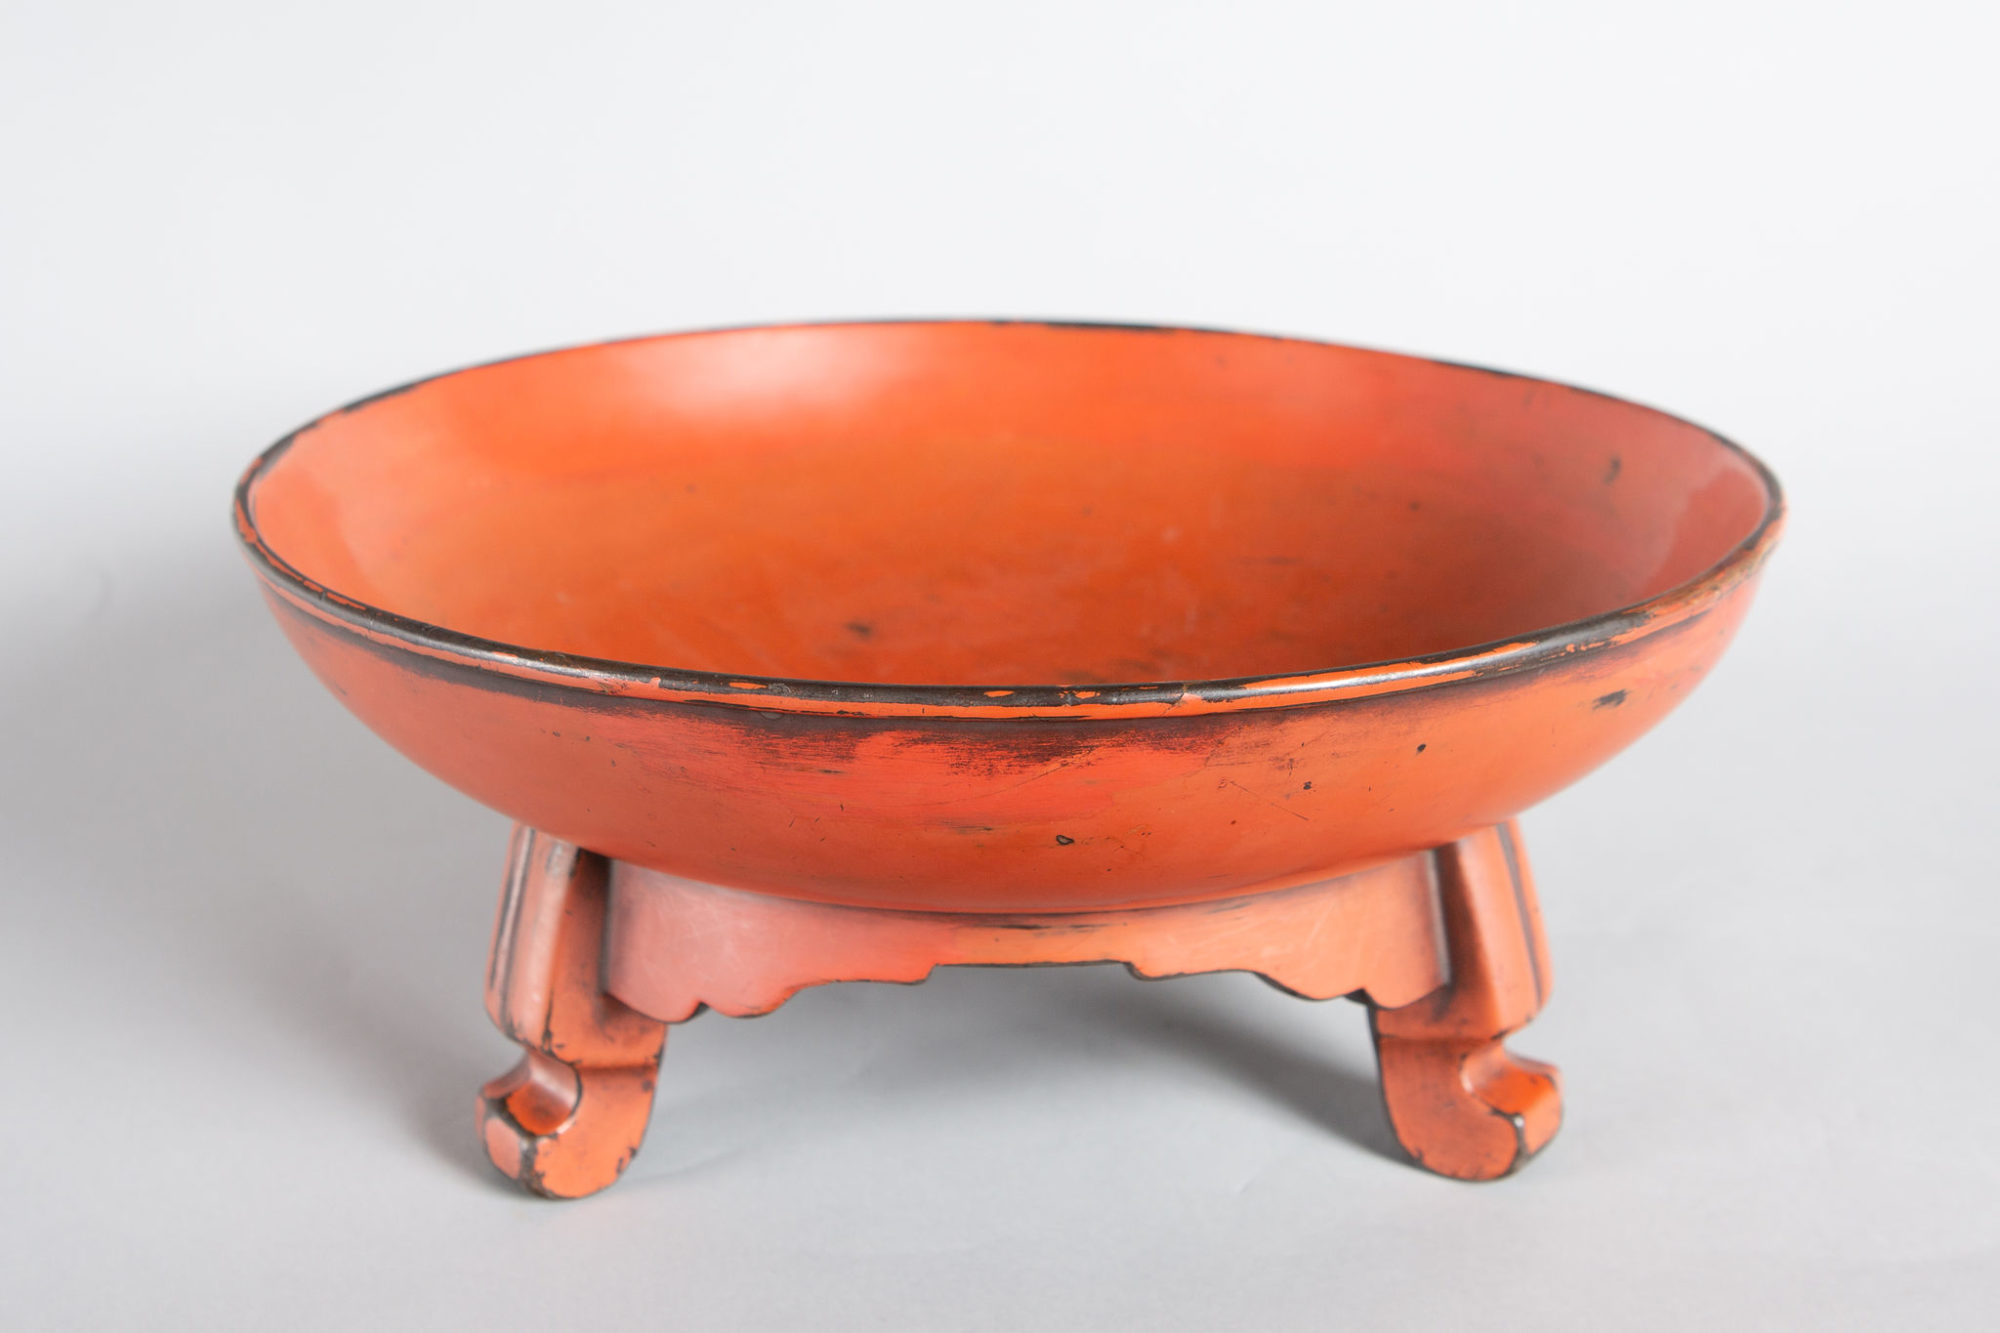 Negoro Lacquer Footed Bowl